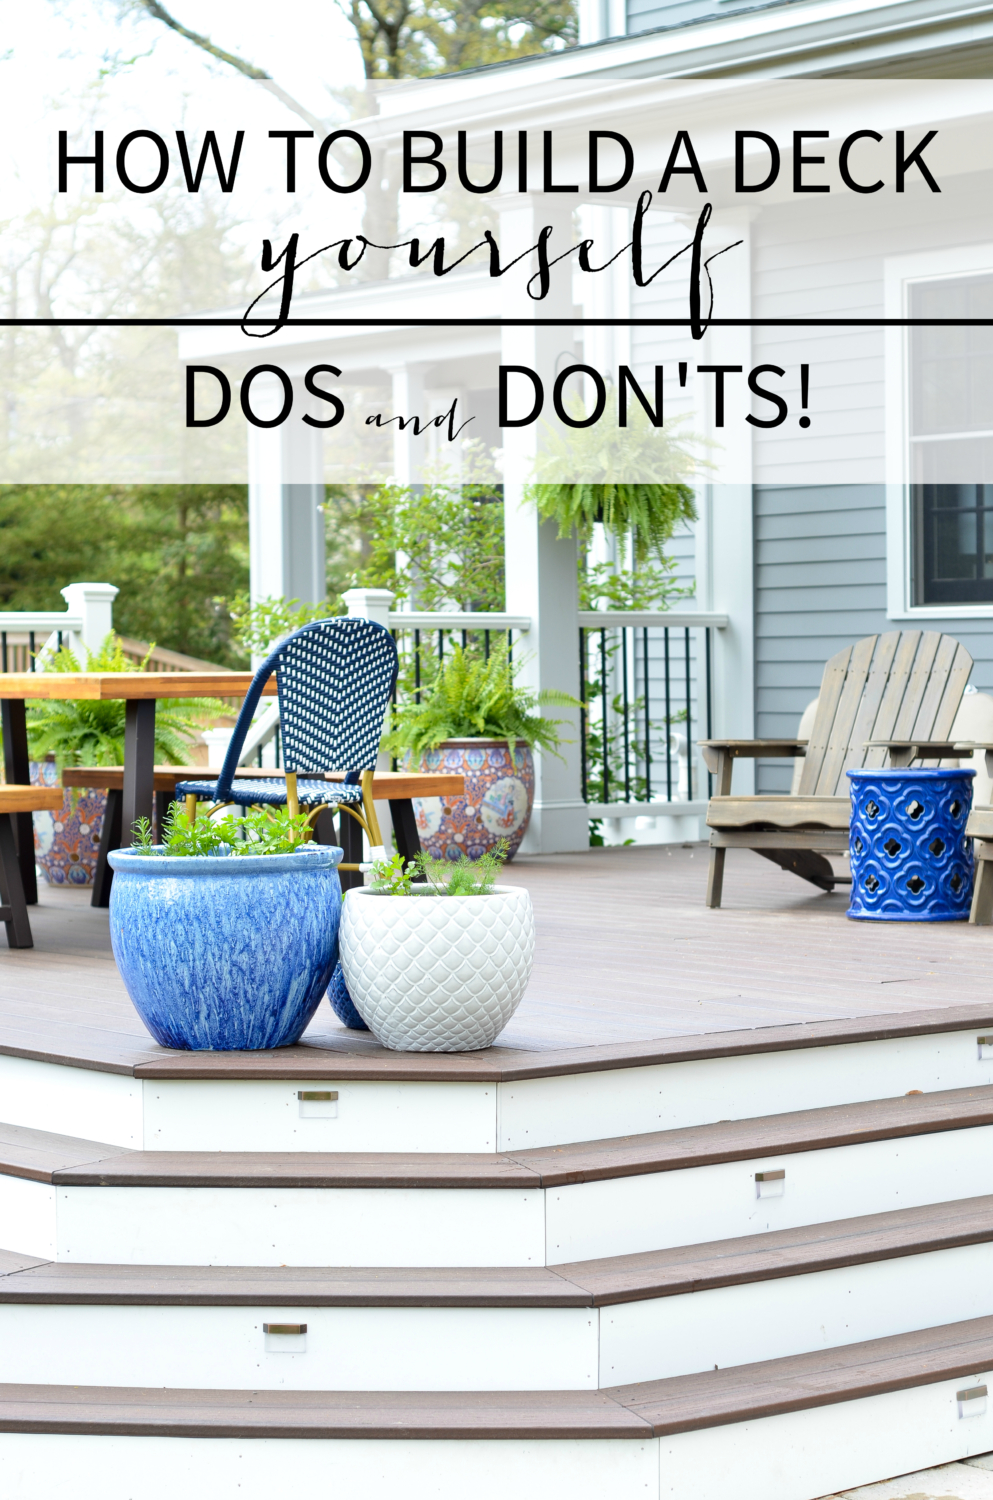 How to build a deck yourself - dos and don't for building a DIY deck!